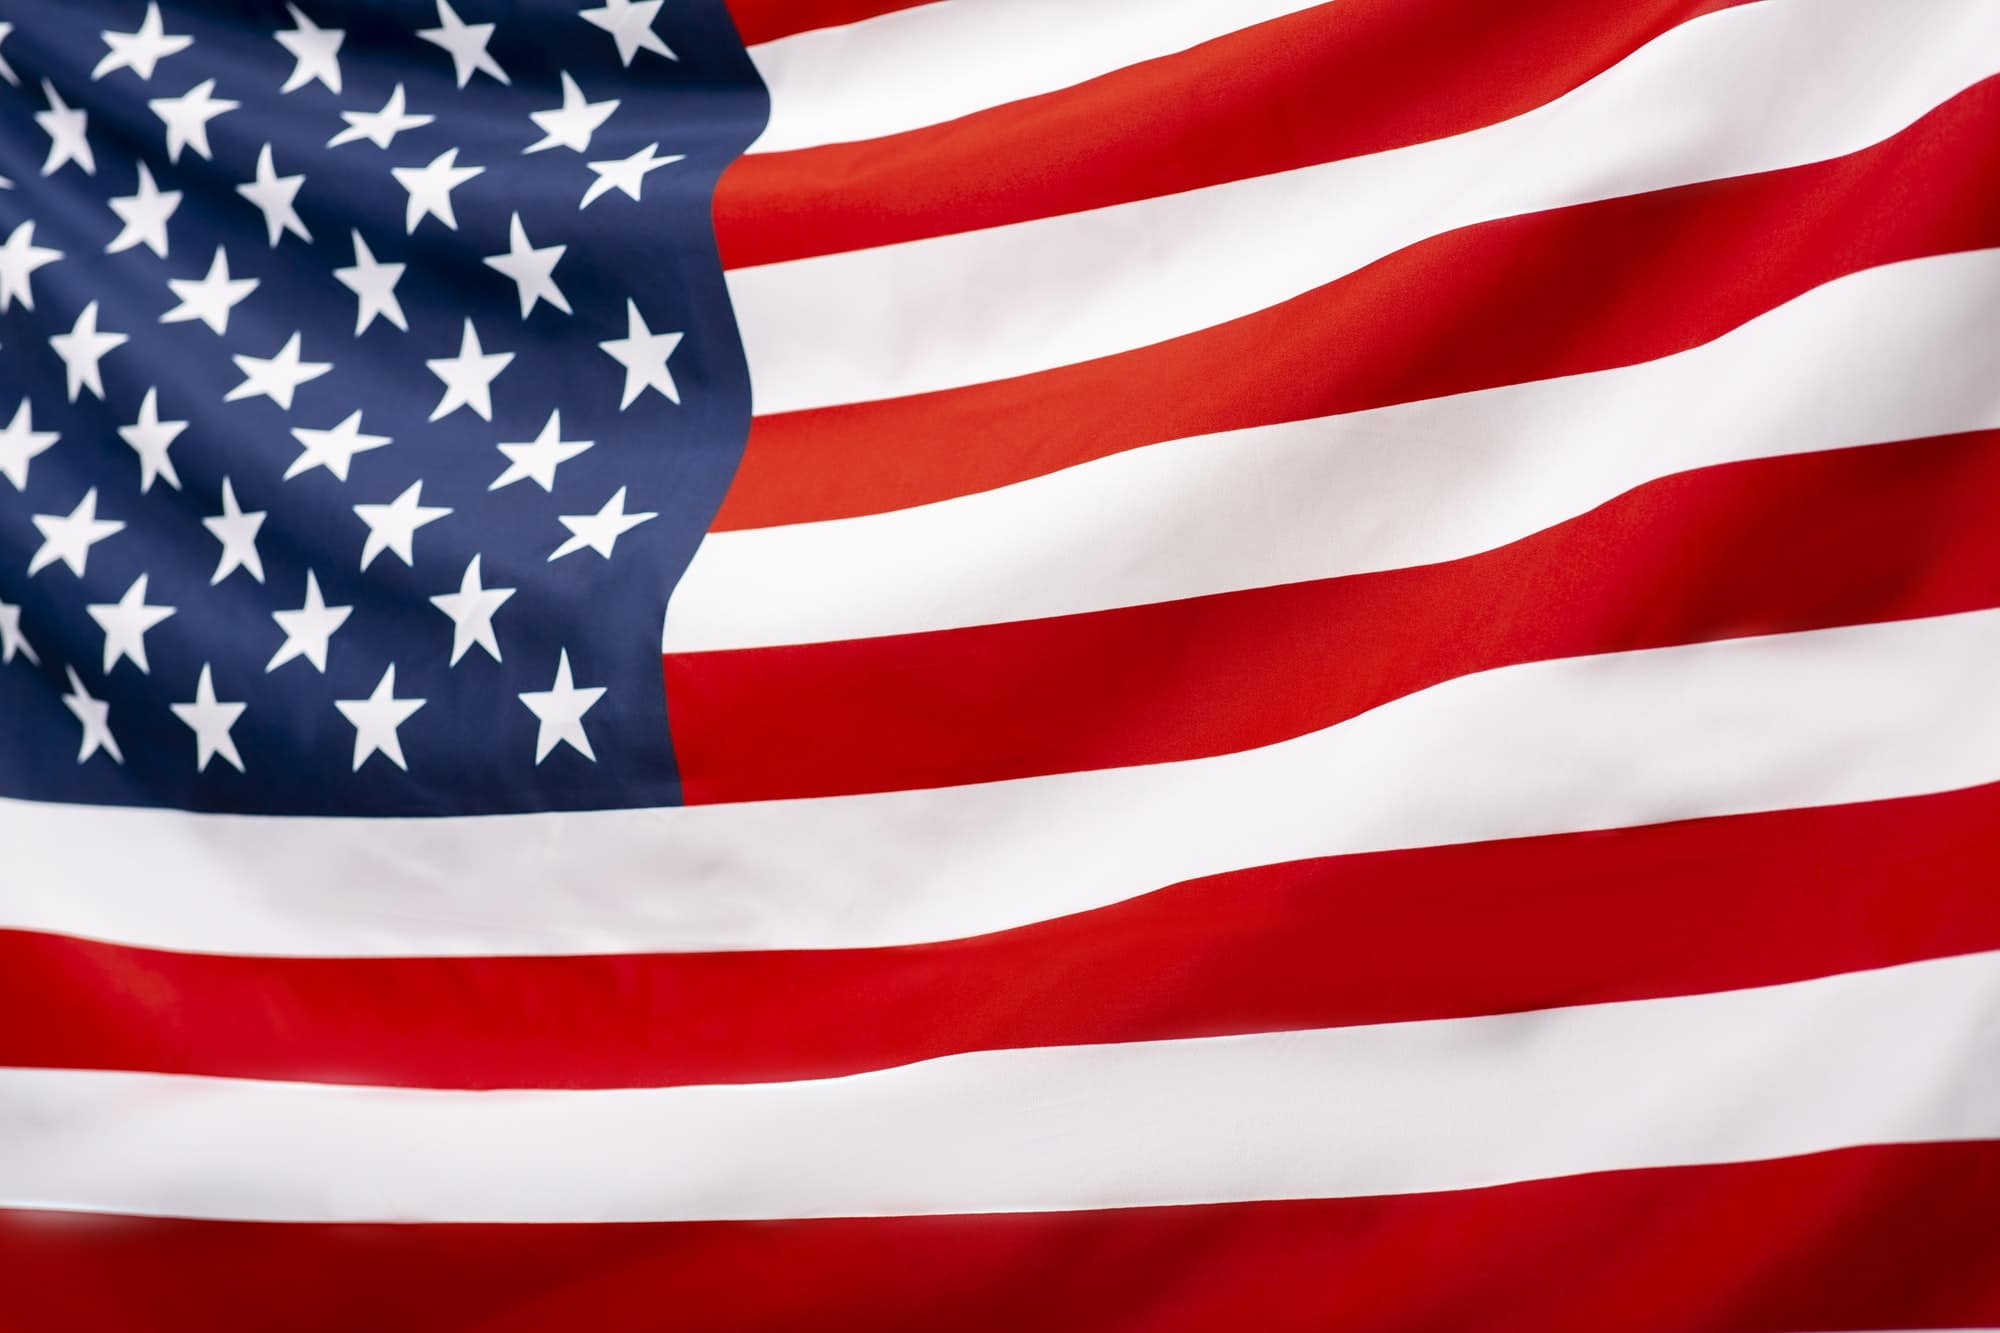 USA American flag background texture, elections, vote